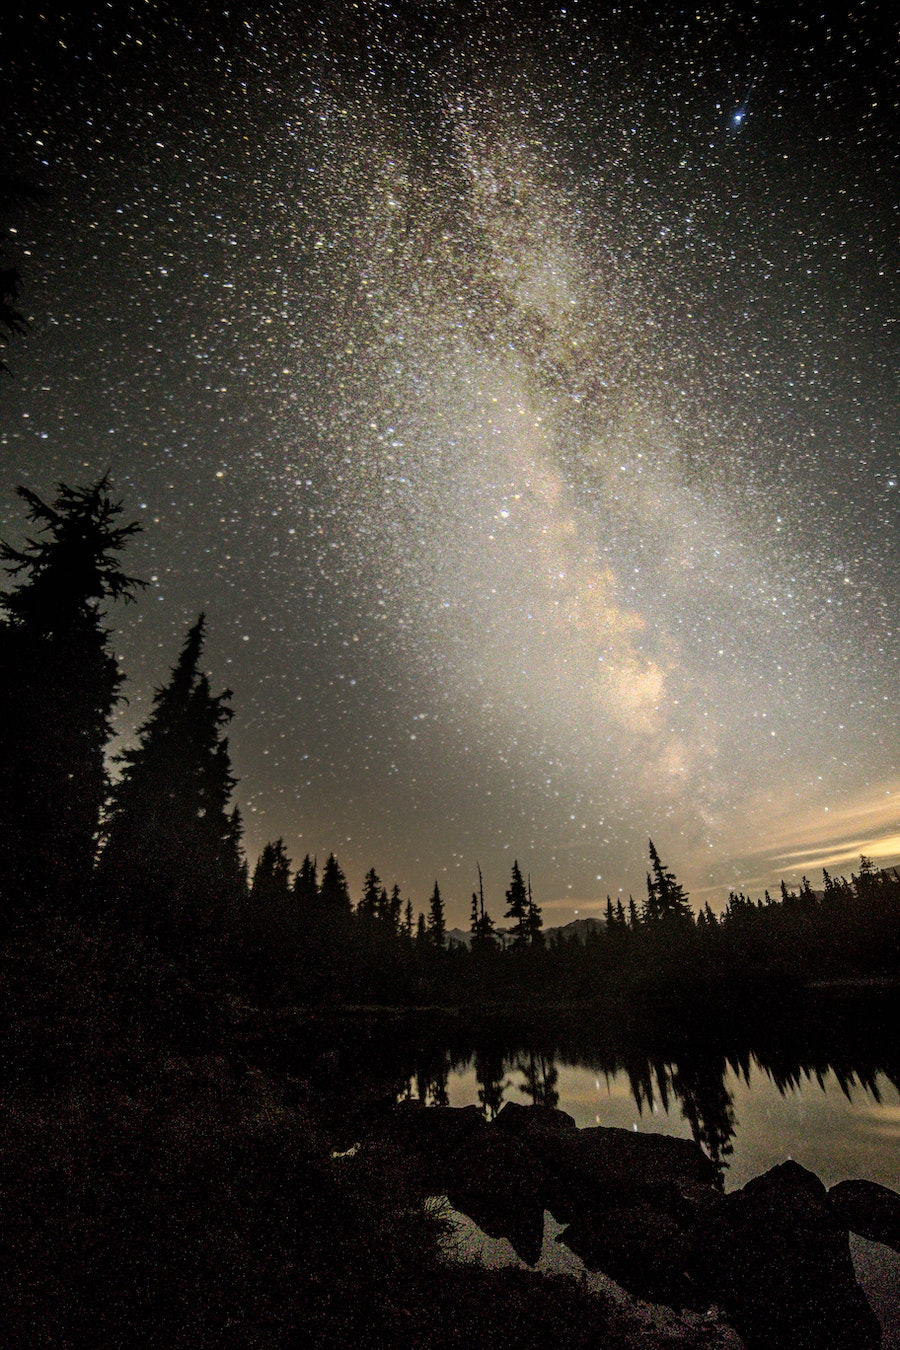 Milky way over Callaghan